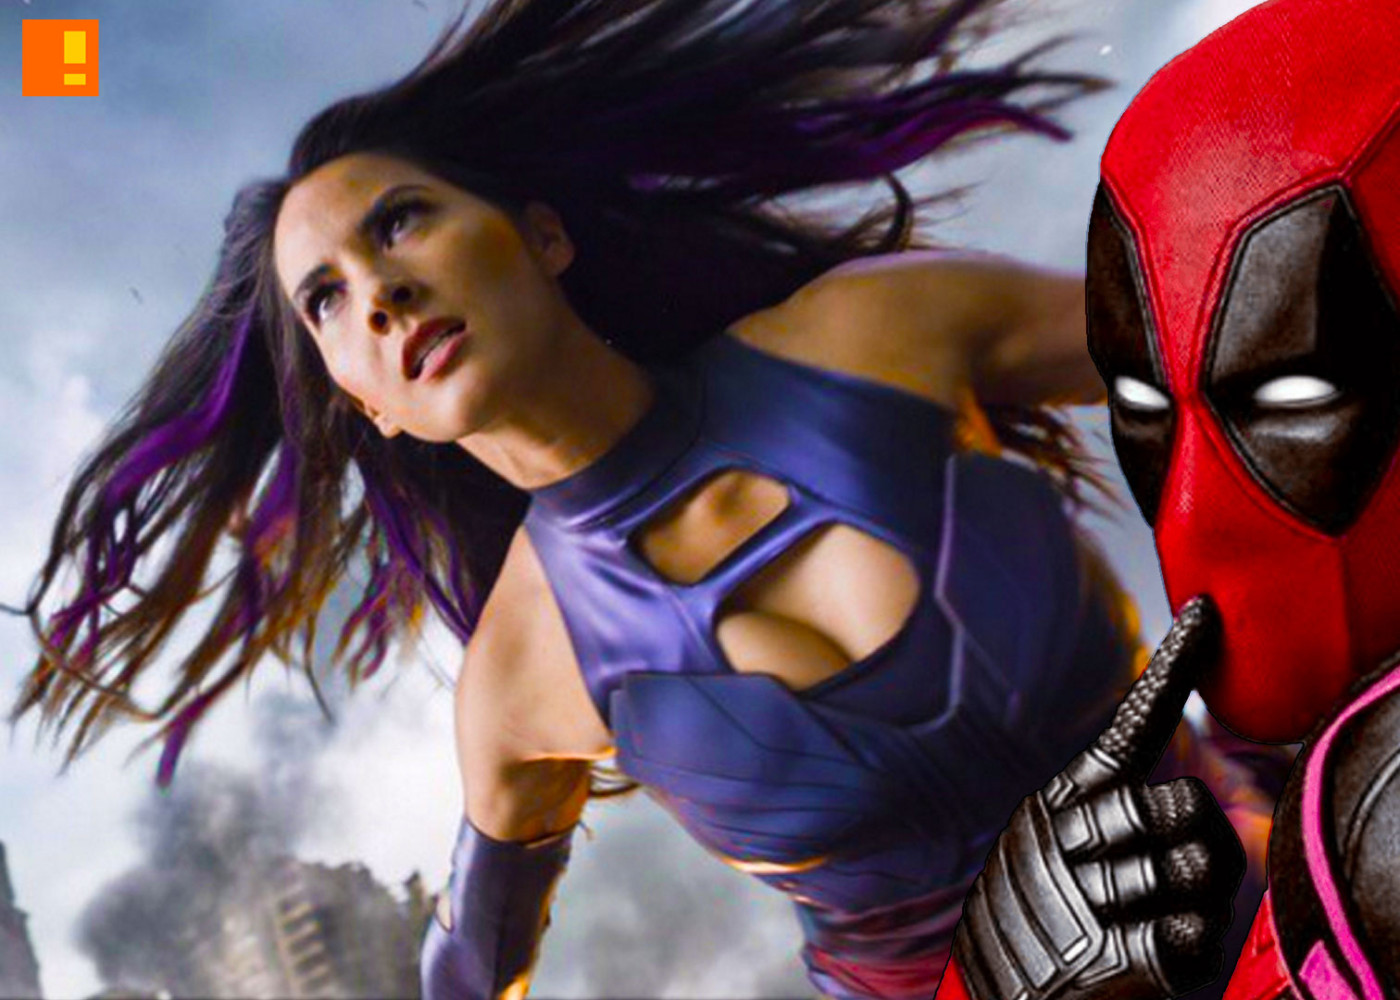 psylocke vs deadpool? 20th century fox. the action pixel. @theactionpixel.